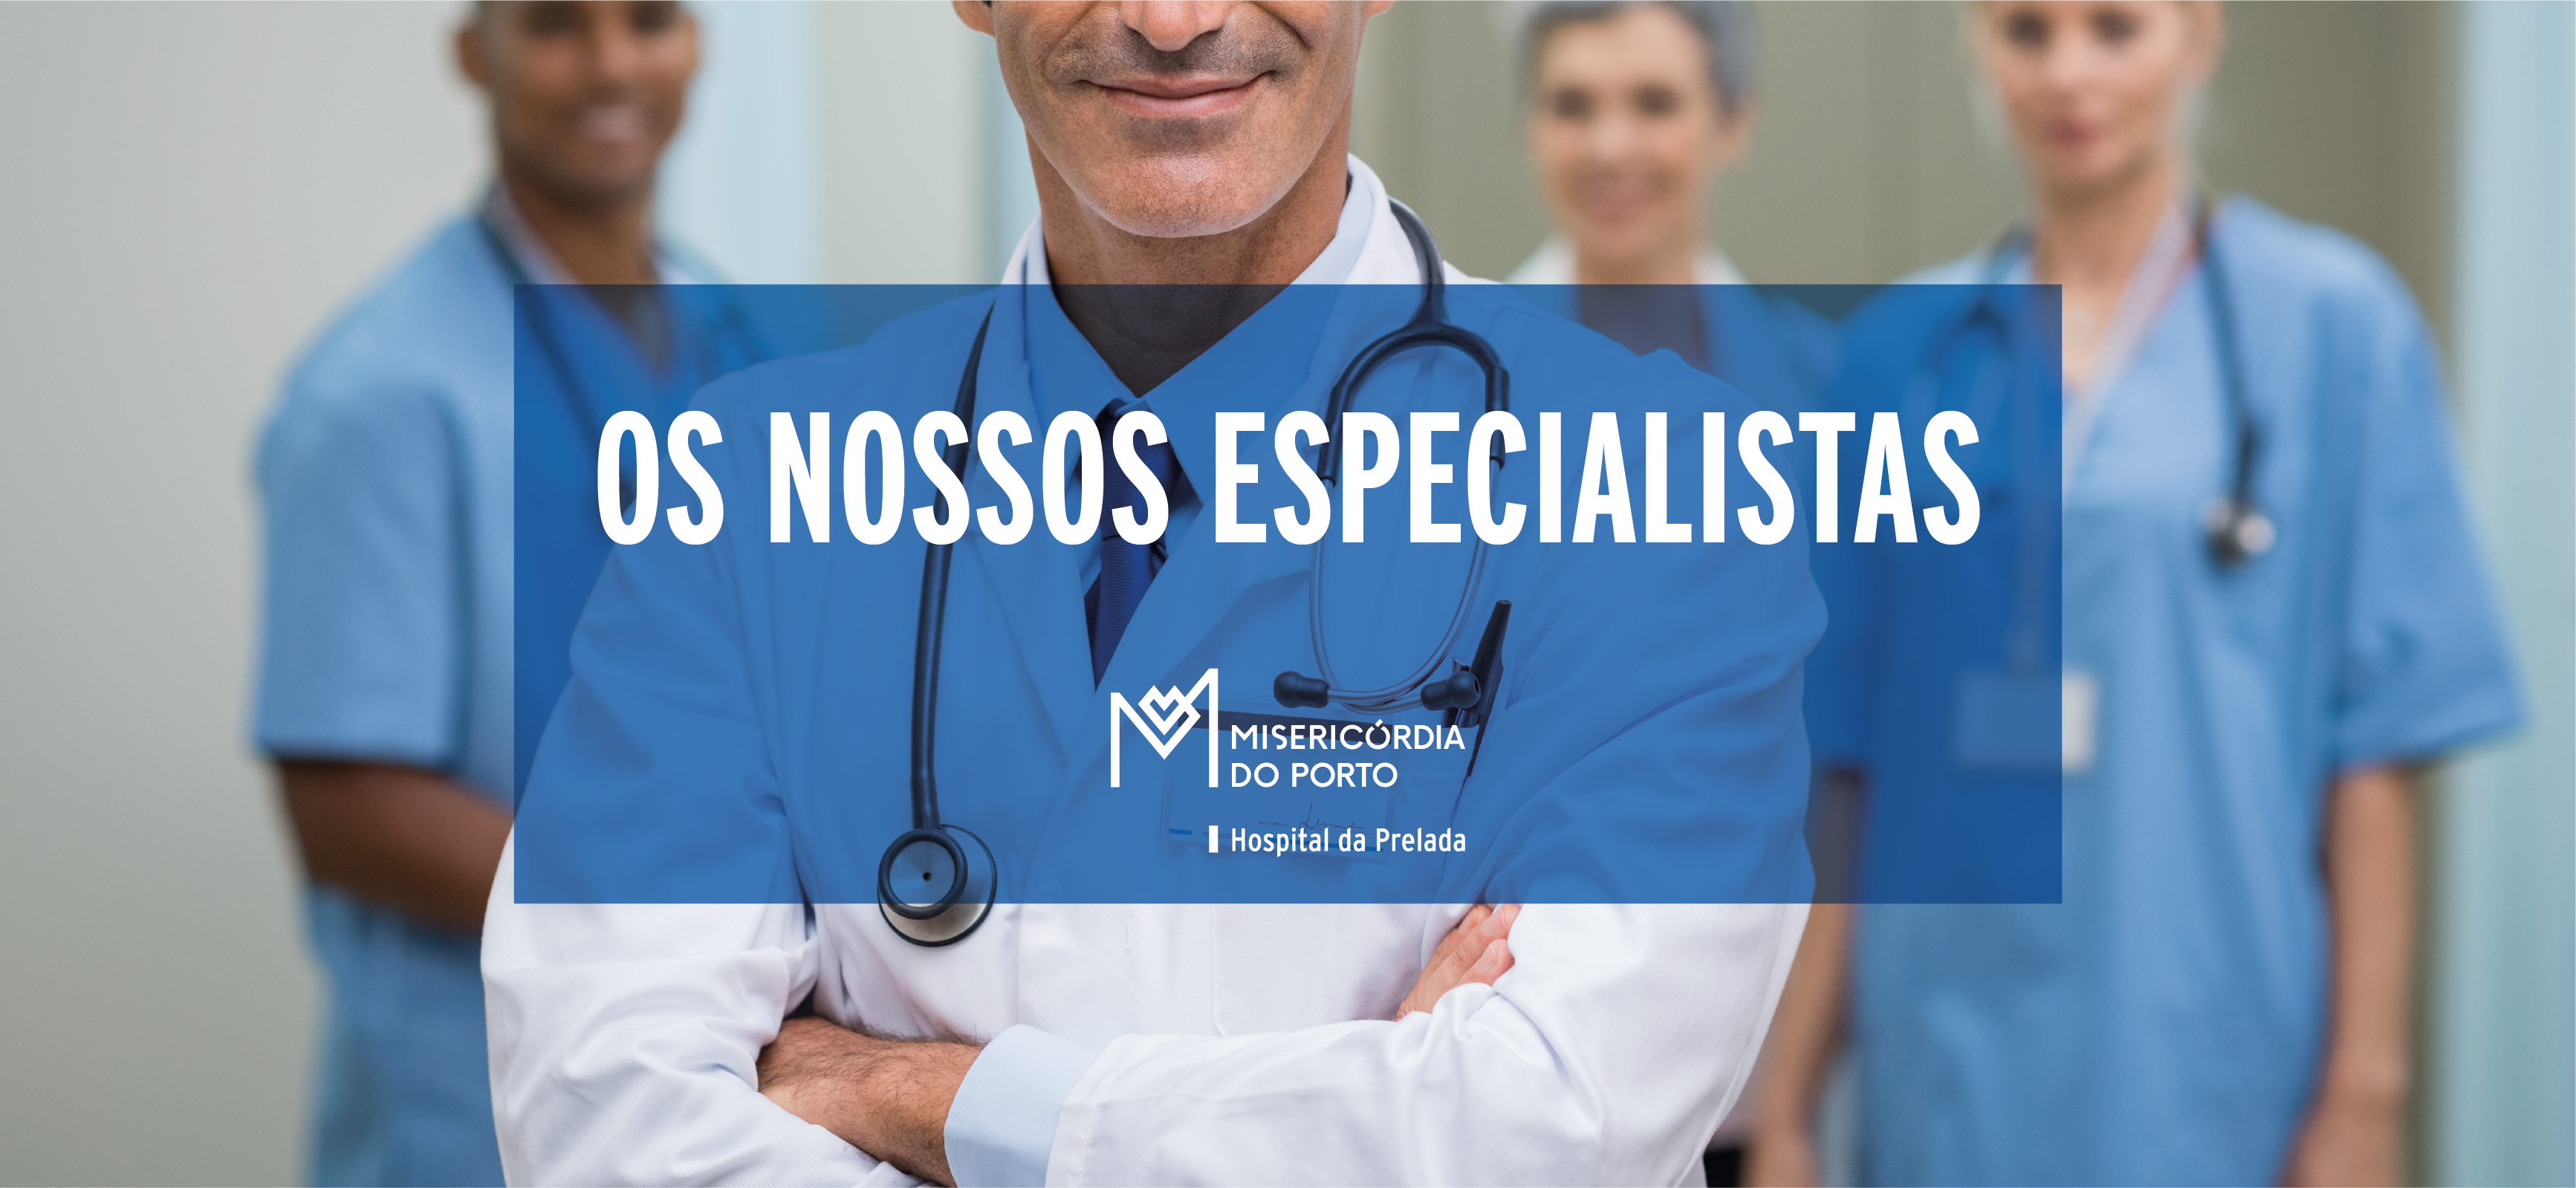 https://portaldasaude.scmp.pt/assets/misc/img/corpo_clinico/Template%20Geral%20HP/Masculino%20HP%20Corpo%20Cl%C3%ADnico.png